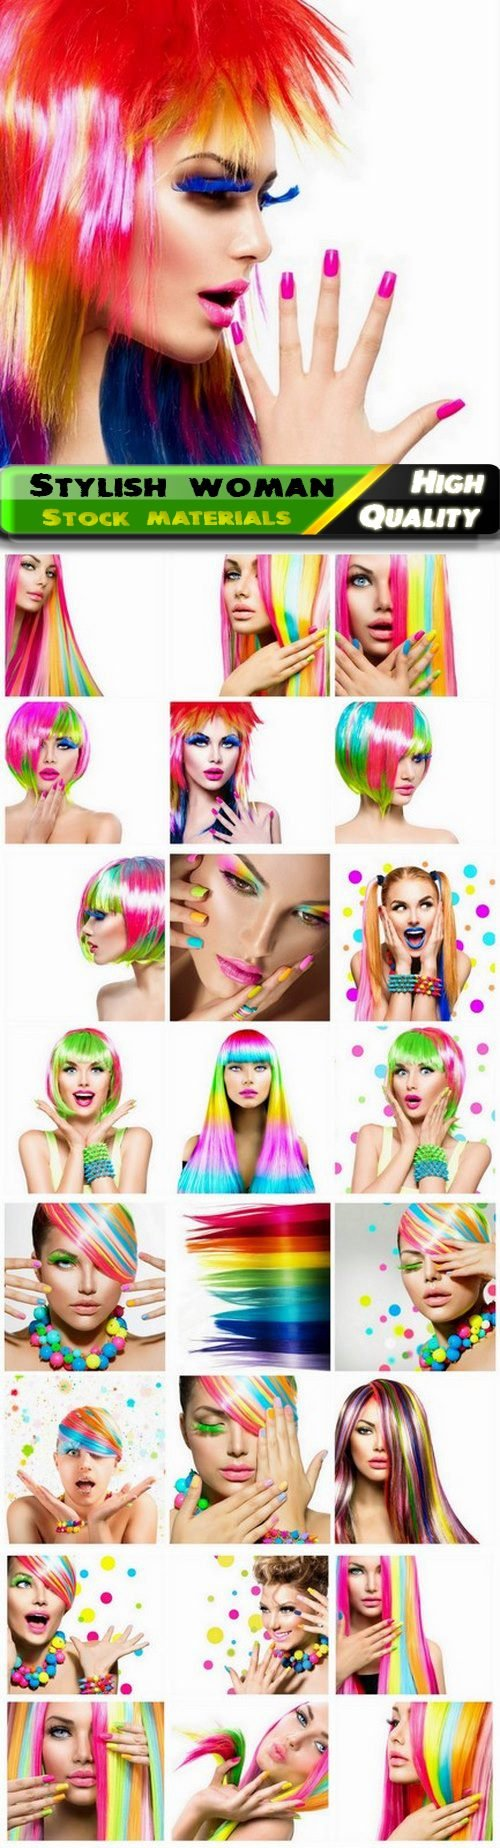 Stylish woman and fashion girl with colorful hair and makeup - 25 Jpg